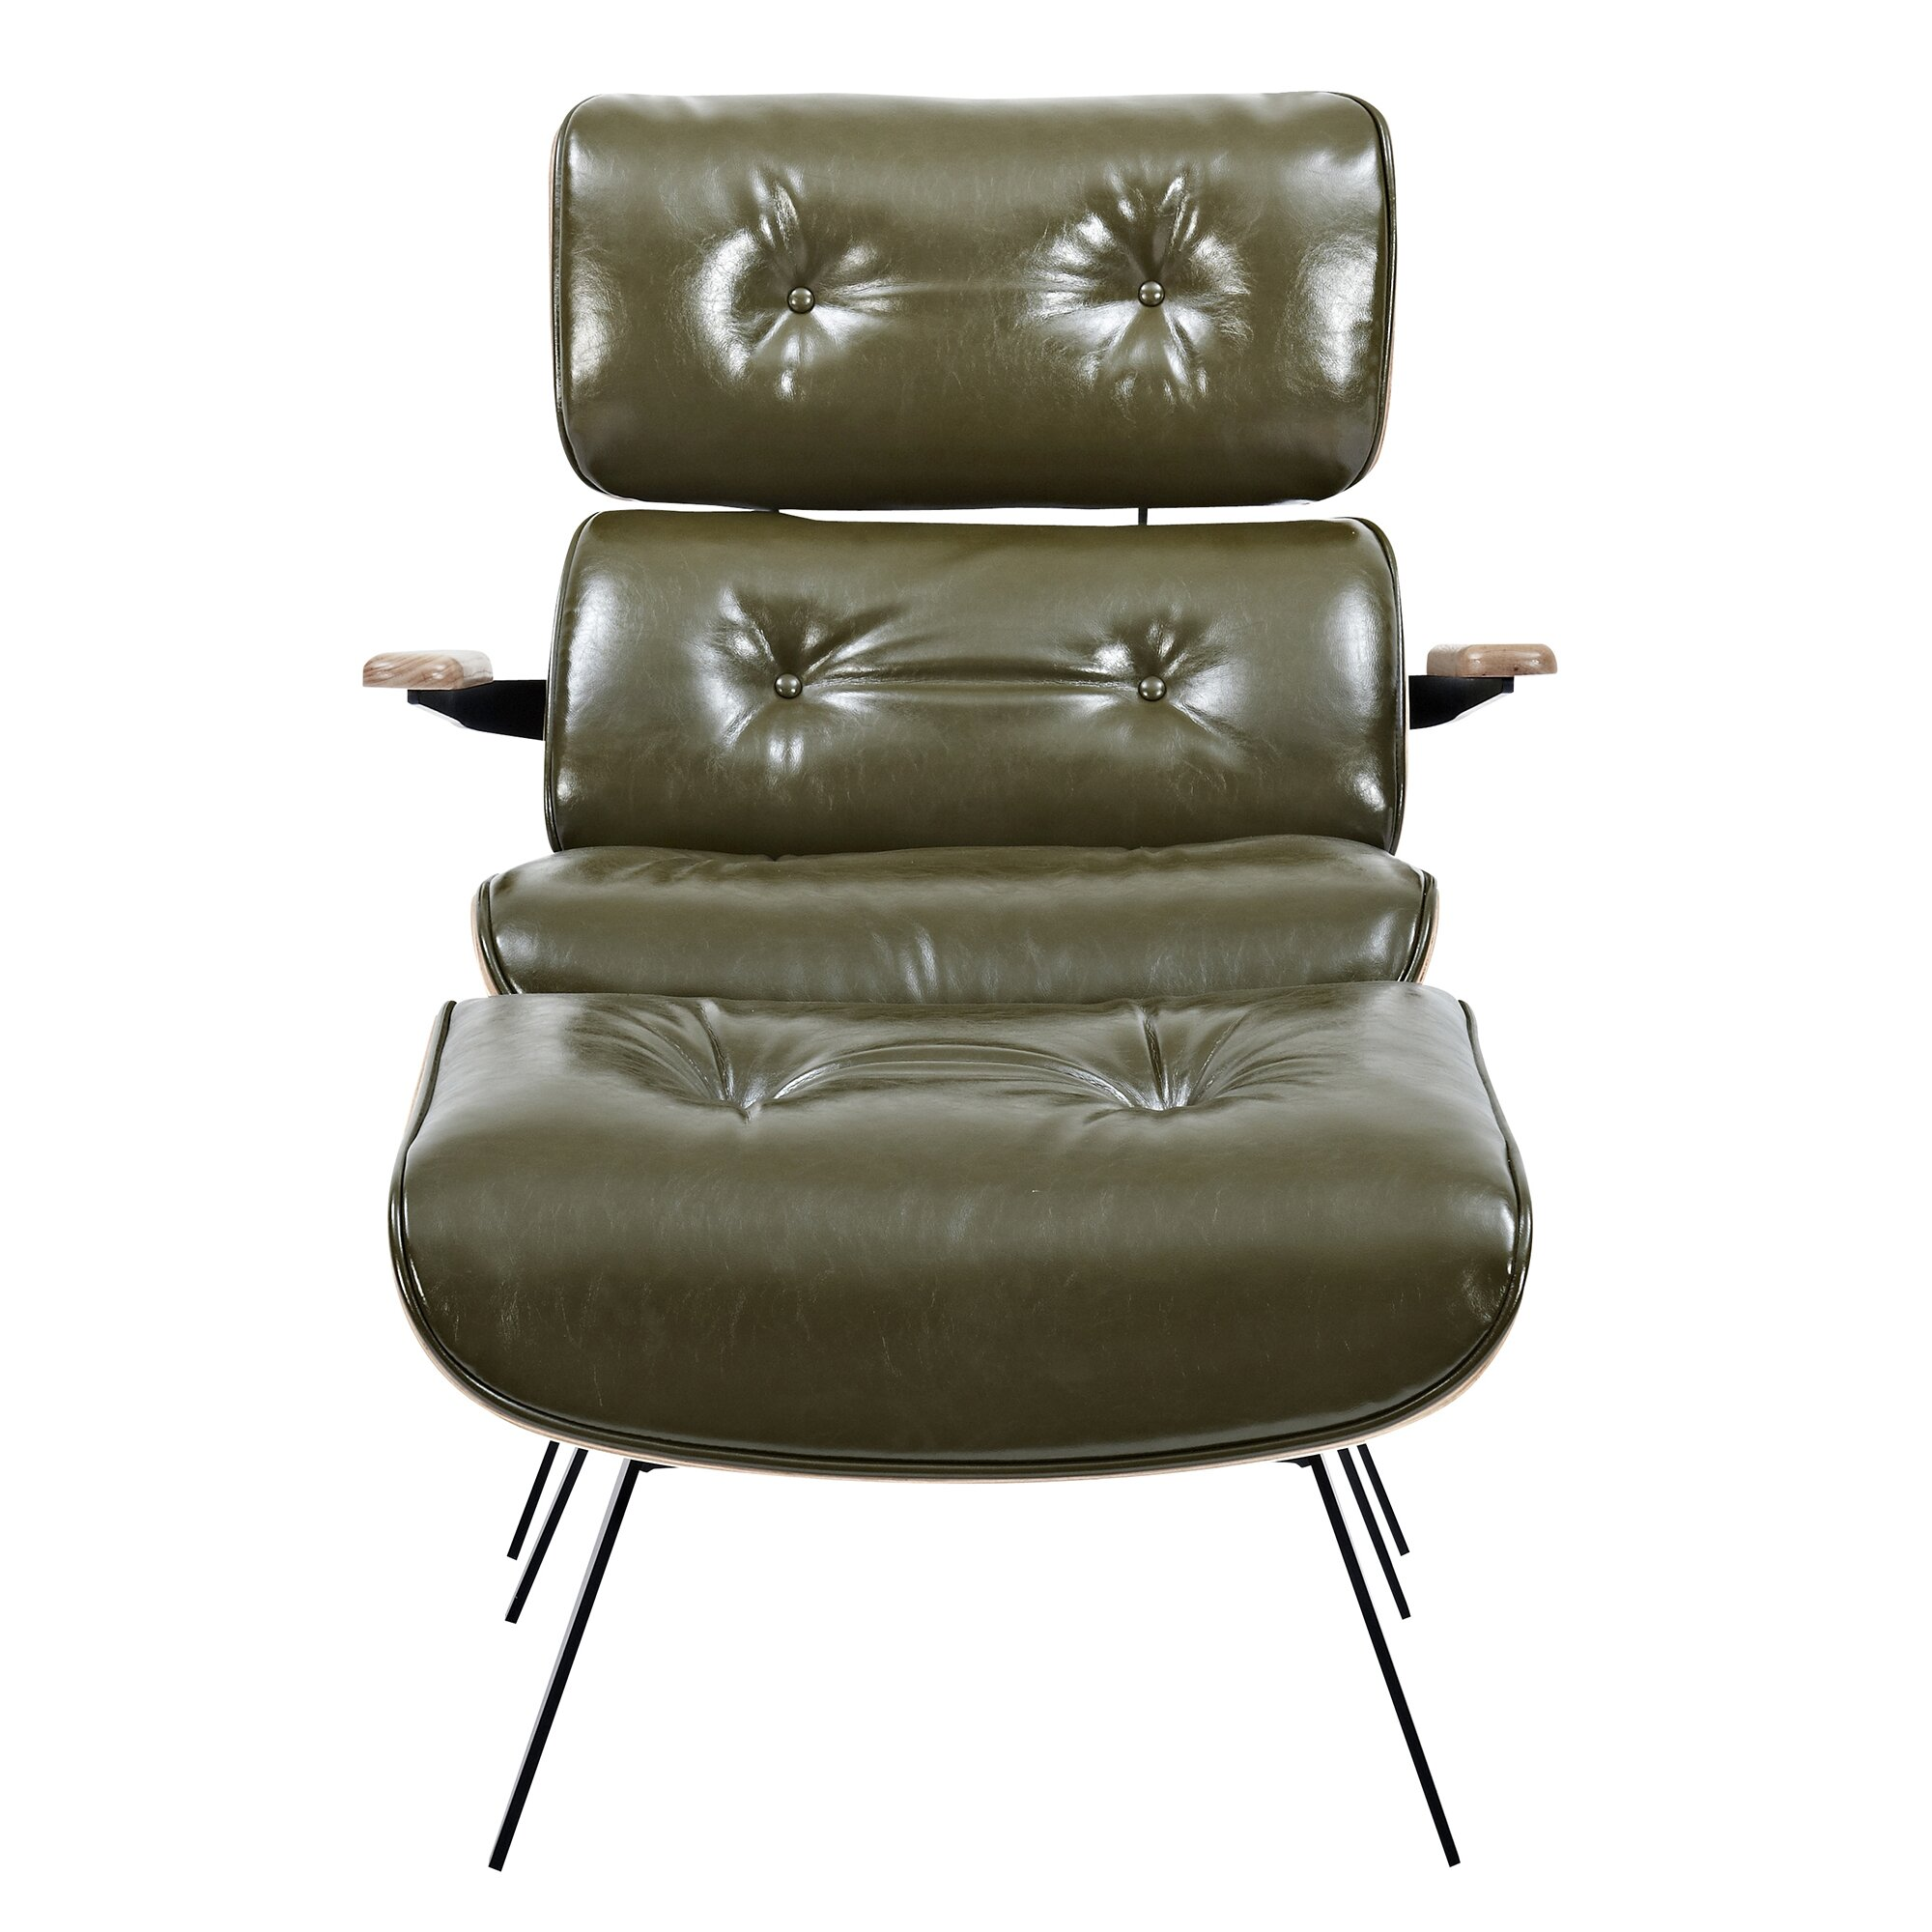 NyeKoncept Eama Lounge Chair with Ottoman